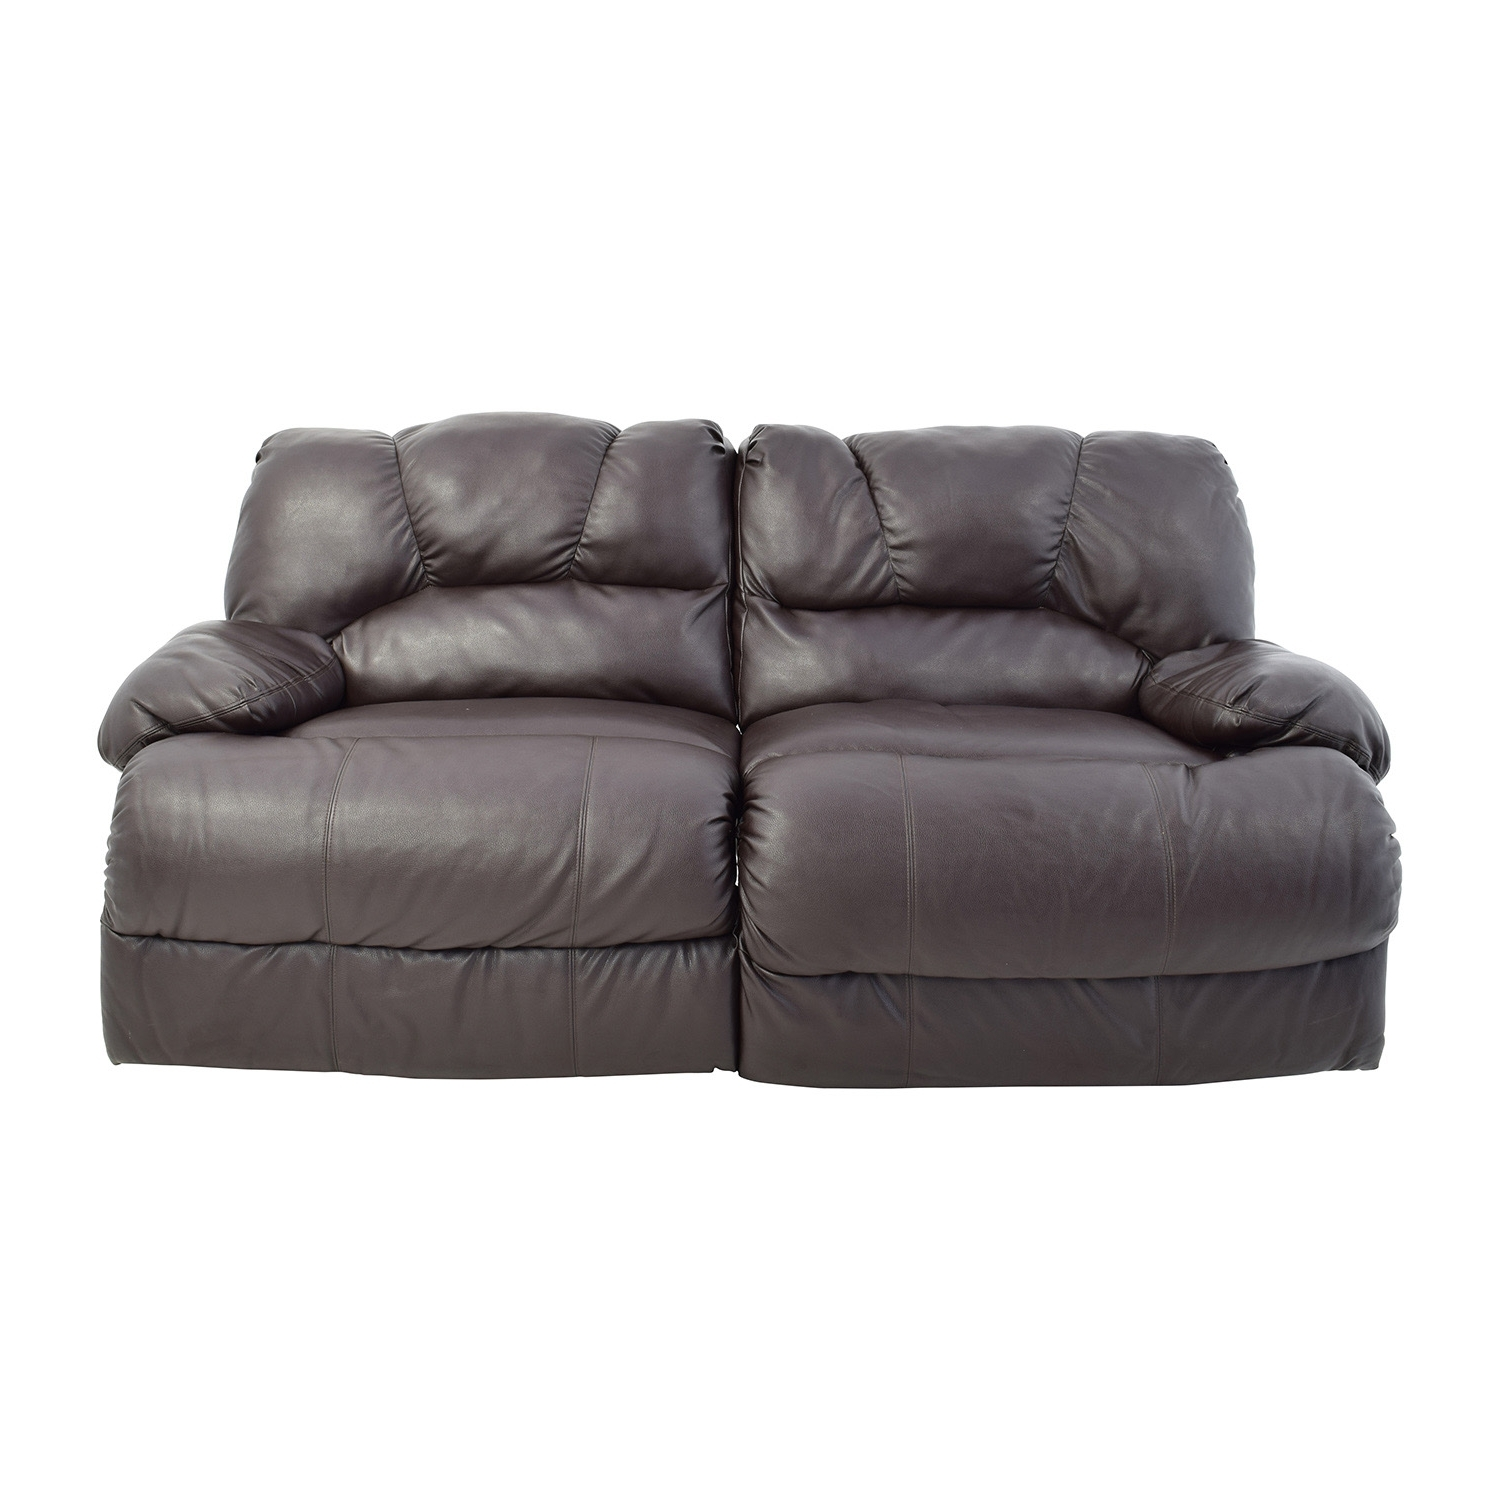 [%83% Off – Nebraska Furniture Mart Nebraska Furniture Mart With Newest Nebraska Furniture Mart Sectional Sofas|Nebraska Furniture Mart Sectional Sofas With Regard To Best And Newest 83% Off – Nebraska Furniture Mart Nebraska Furniture Mart|2018 Nebraska Furniture Mart Sectional Sofas With Regard To 83% Off – Nebraska Furniture Mart Nebraska Furniture Mart|Most Recent 83% Off – Nebraska Furniture Mart Nebraska Furniture Mart Within Nebraska Furniture Mart Sectional Sofas%] (View 1 of 20)